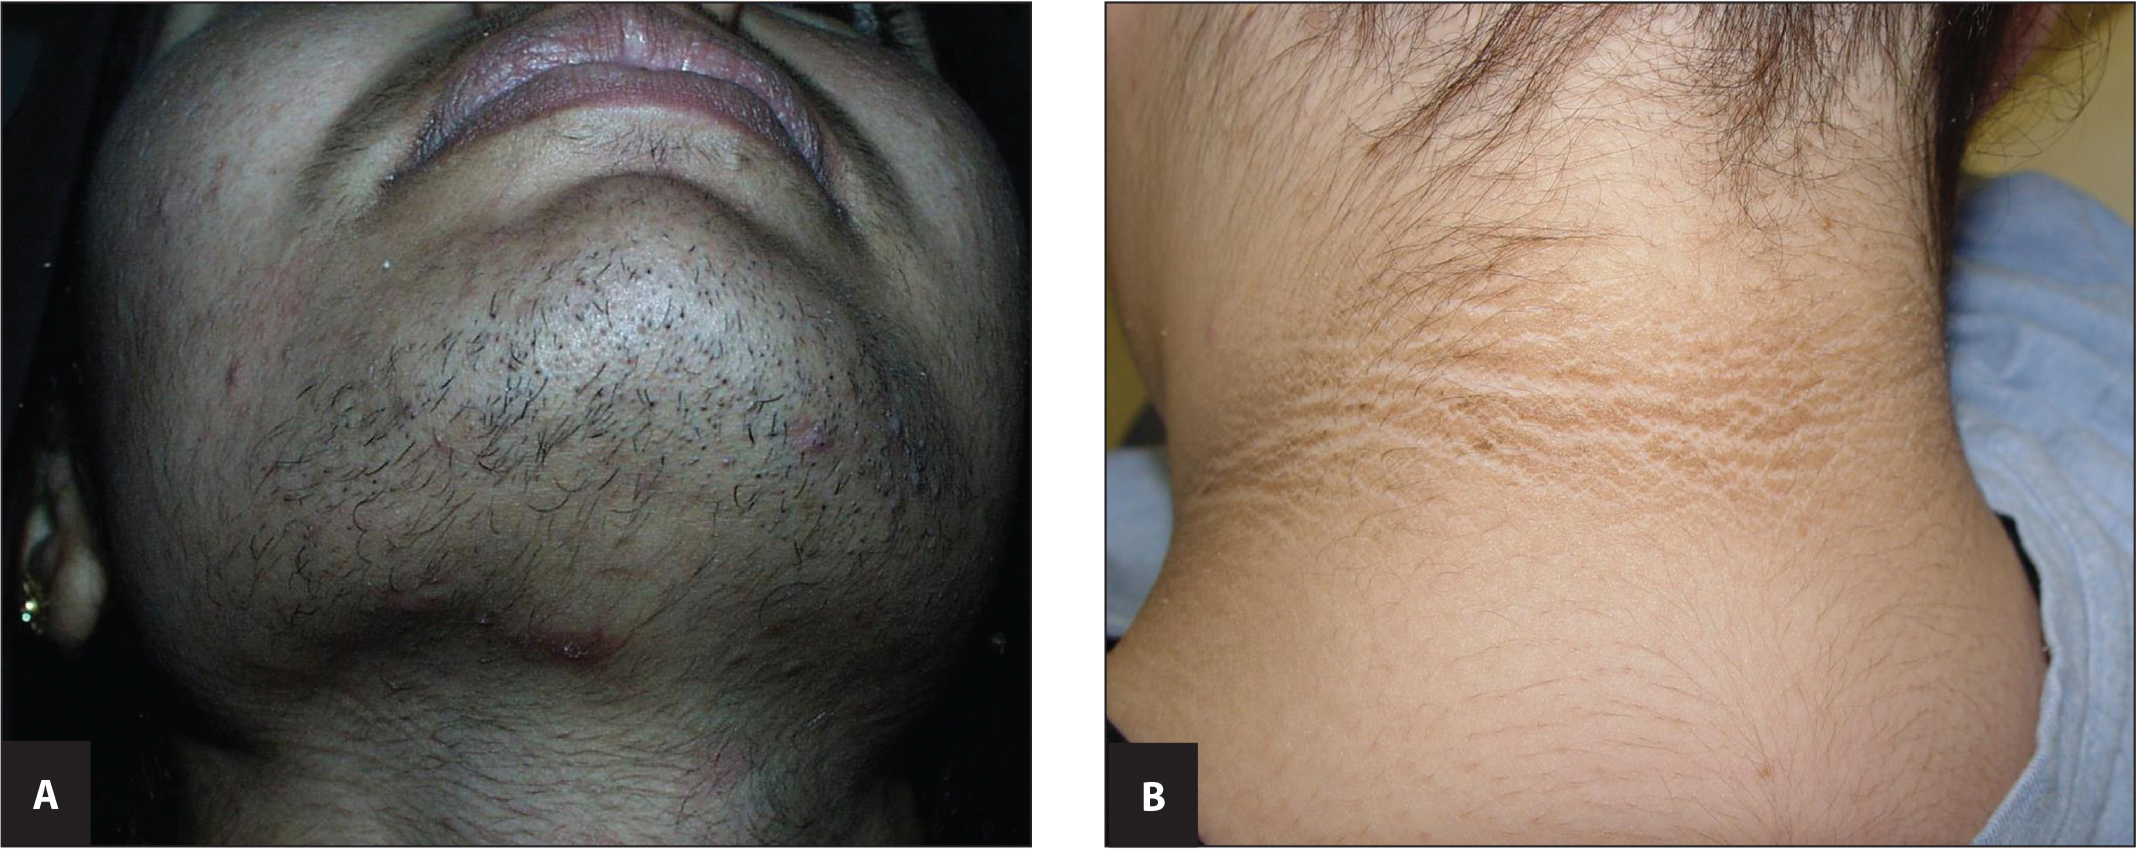 (A) Hirsutism and acne and (B) acanthosis nigricans in women. Courtesy of Dr. Bernard Cohen, Professor of Dermatology and Pediatrics, Johns Hopkins University School of Medicine (used with permission).